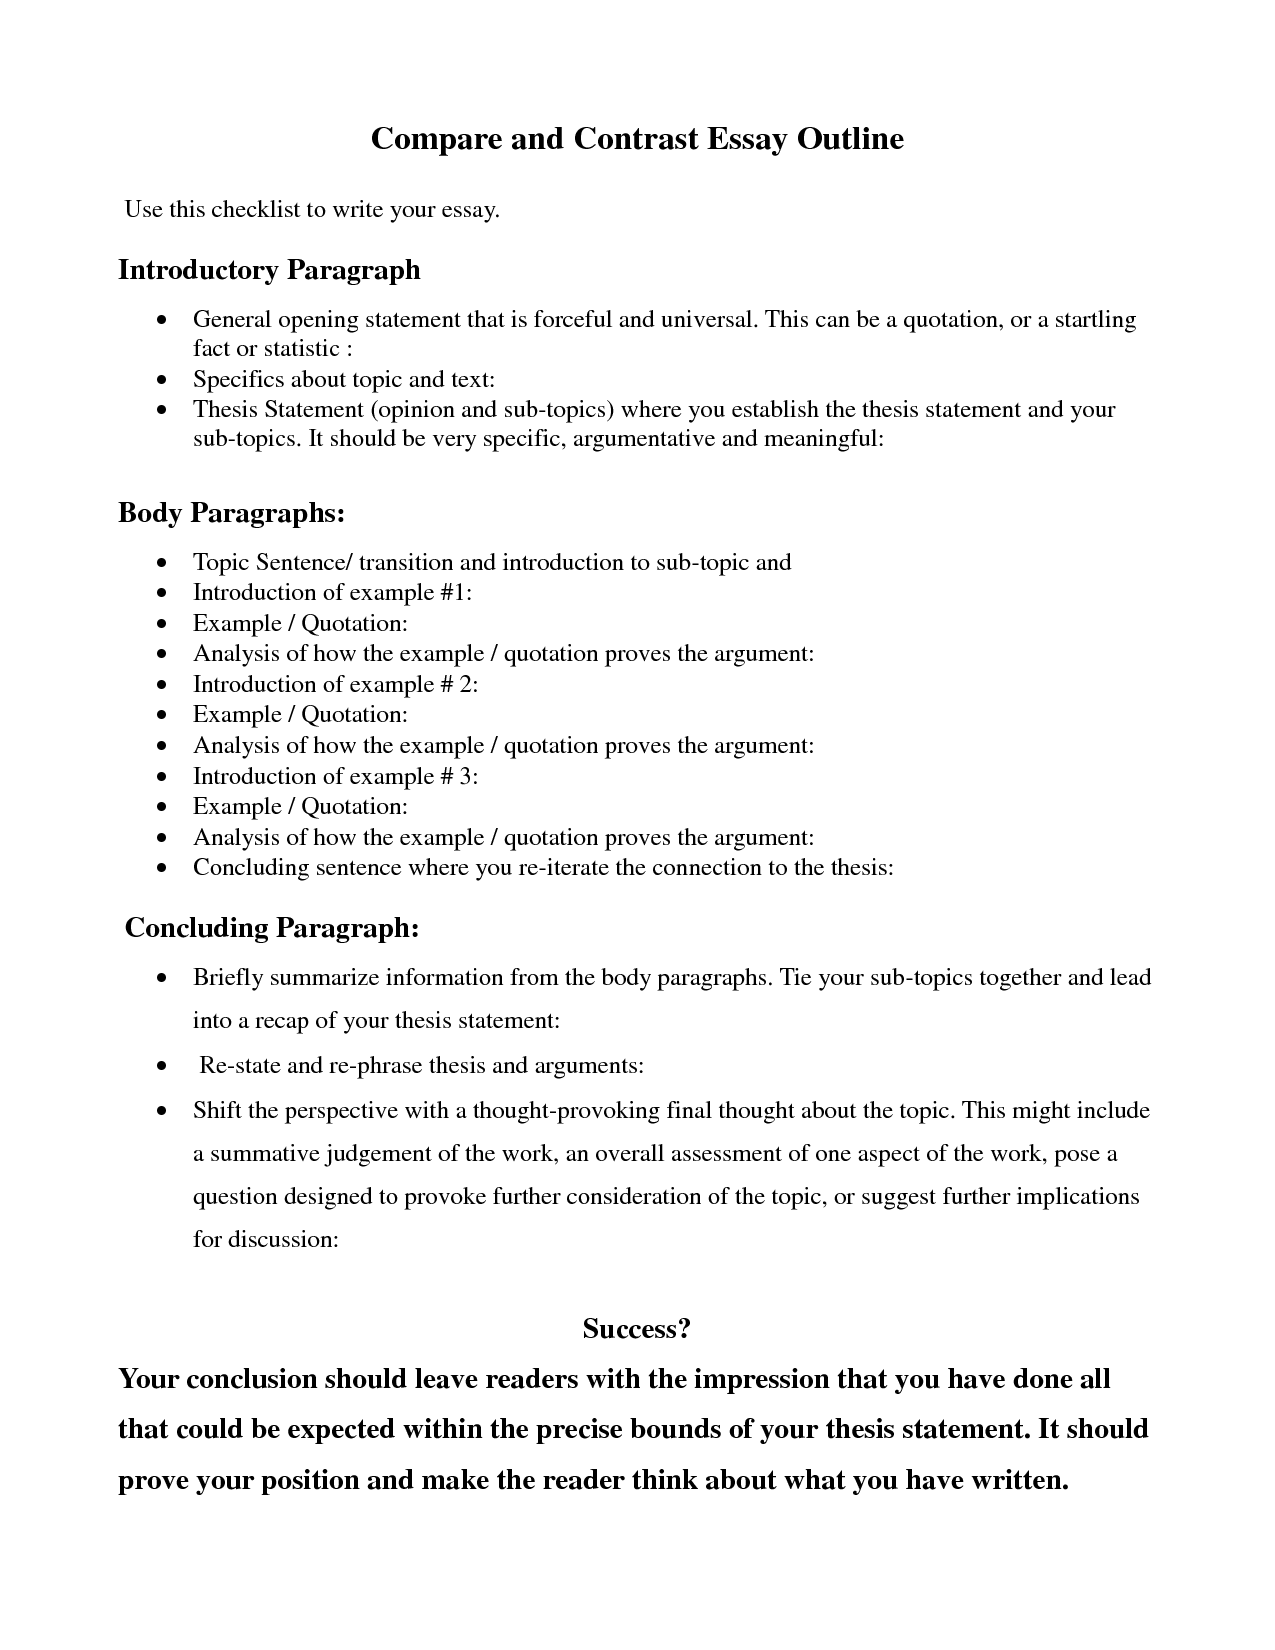 comparecontrast essay outline google search - Compare And Contrast Essays Examples